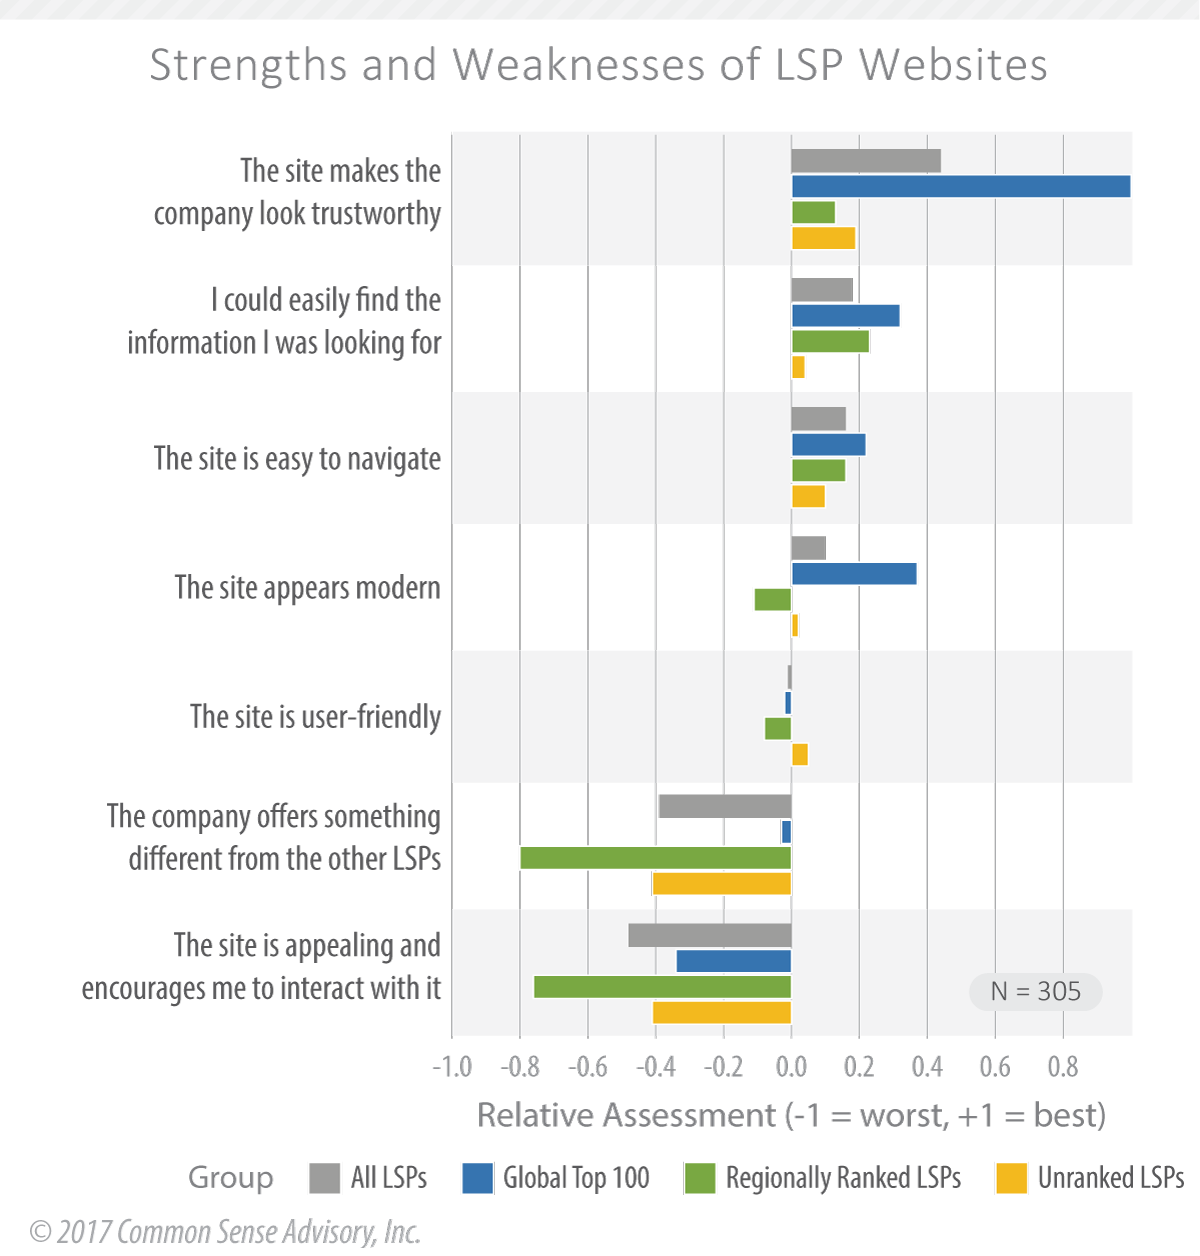 Strong Websites Drive Sales: Strengths and Weaknesses of 305